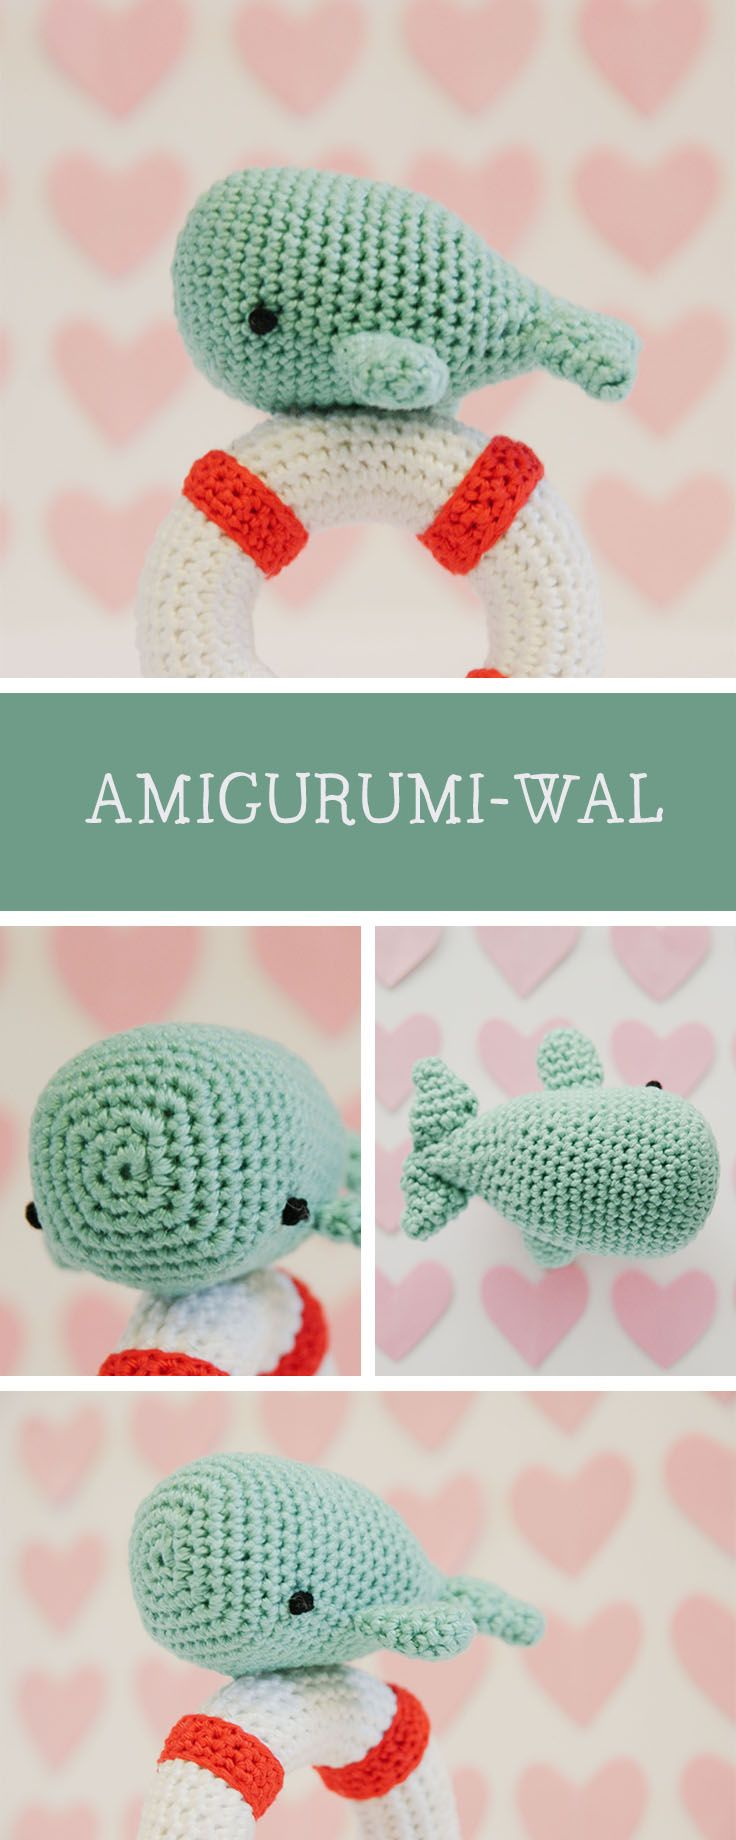 27 best häkeln images on Pinterest | Amigurumi patterns, Crochet ...